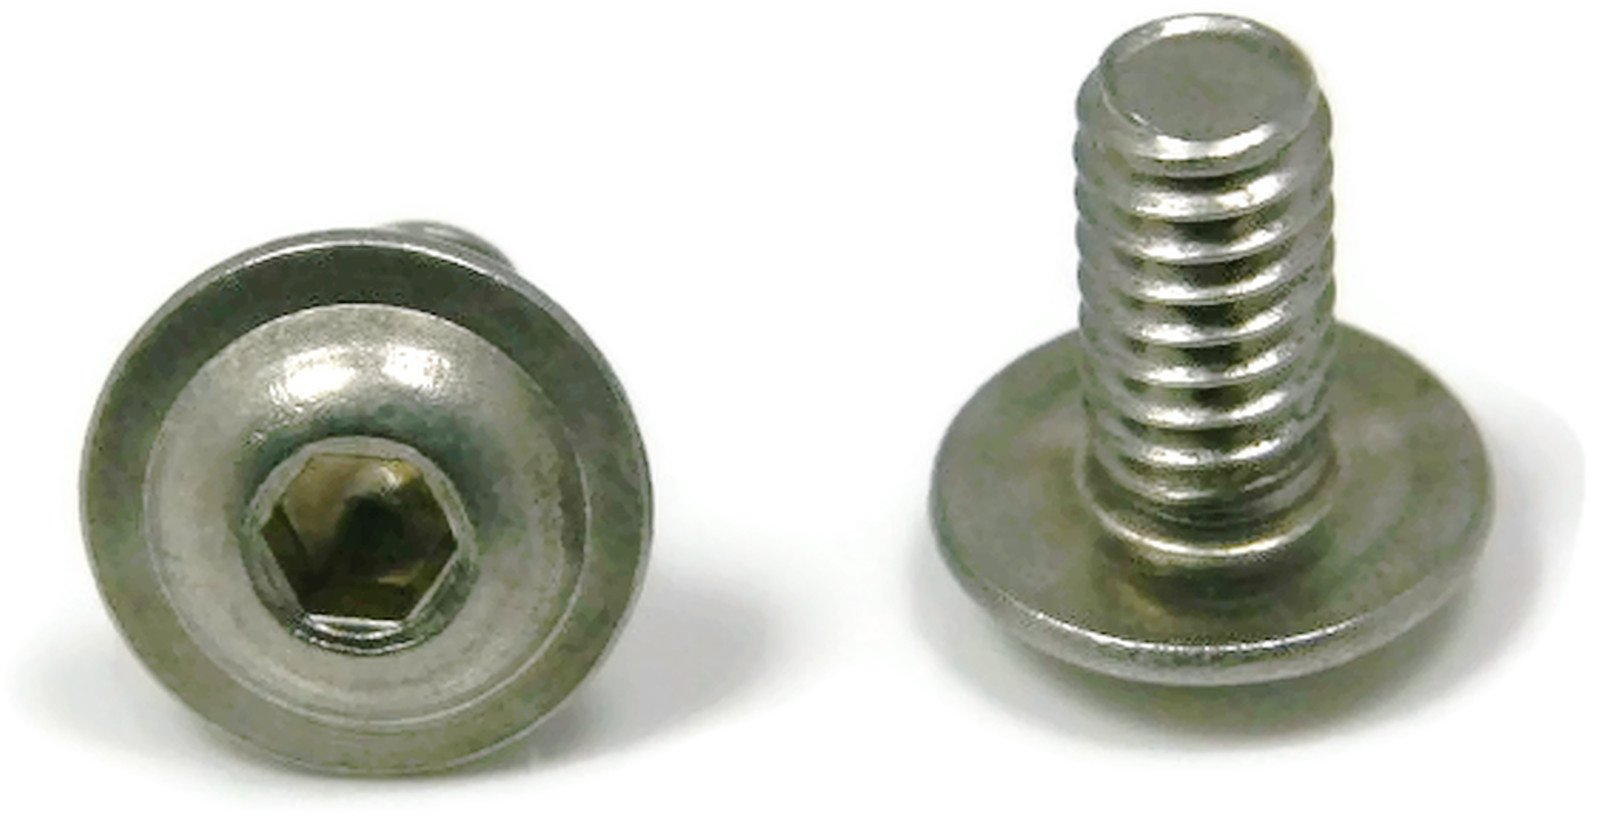 Button Flange Socket Head Screw 18-8 Stainless Steel - 1/4-20 x 3/4 (FT) Qty-100